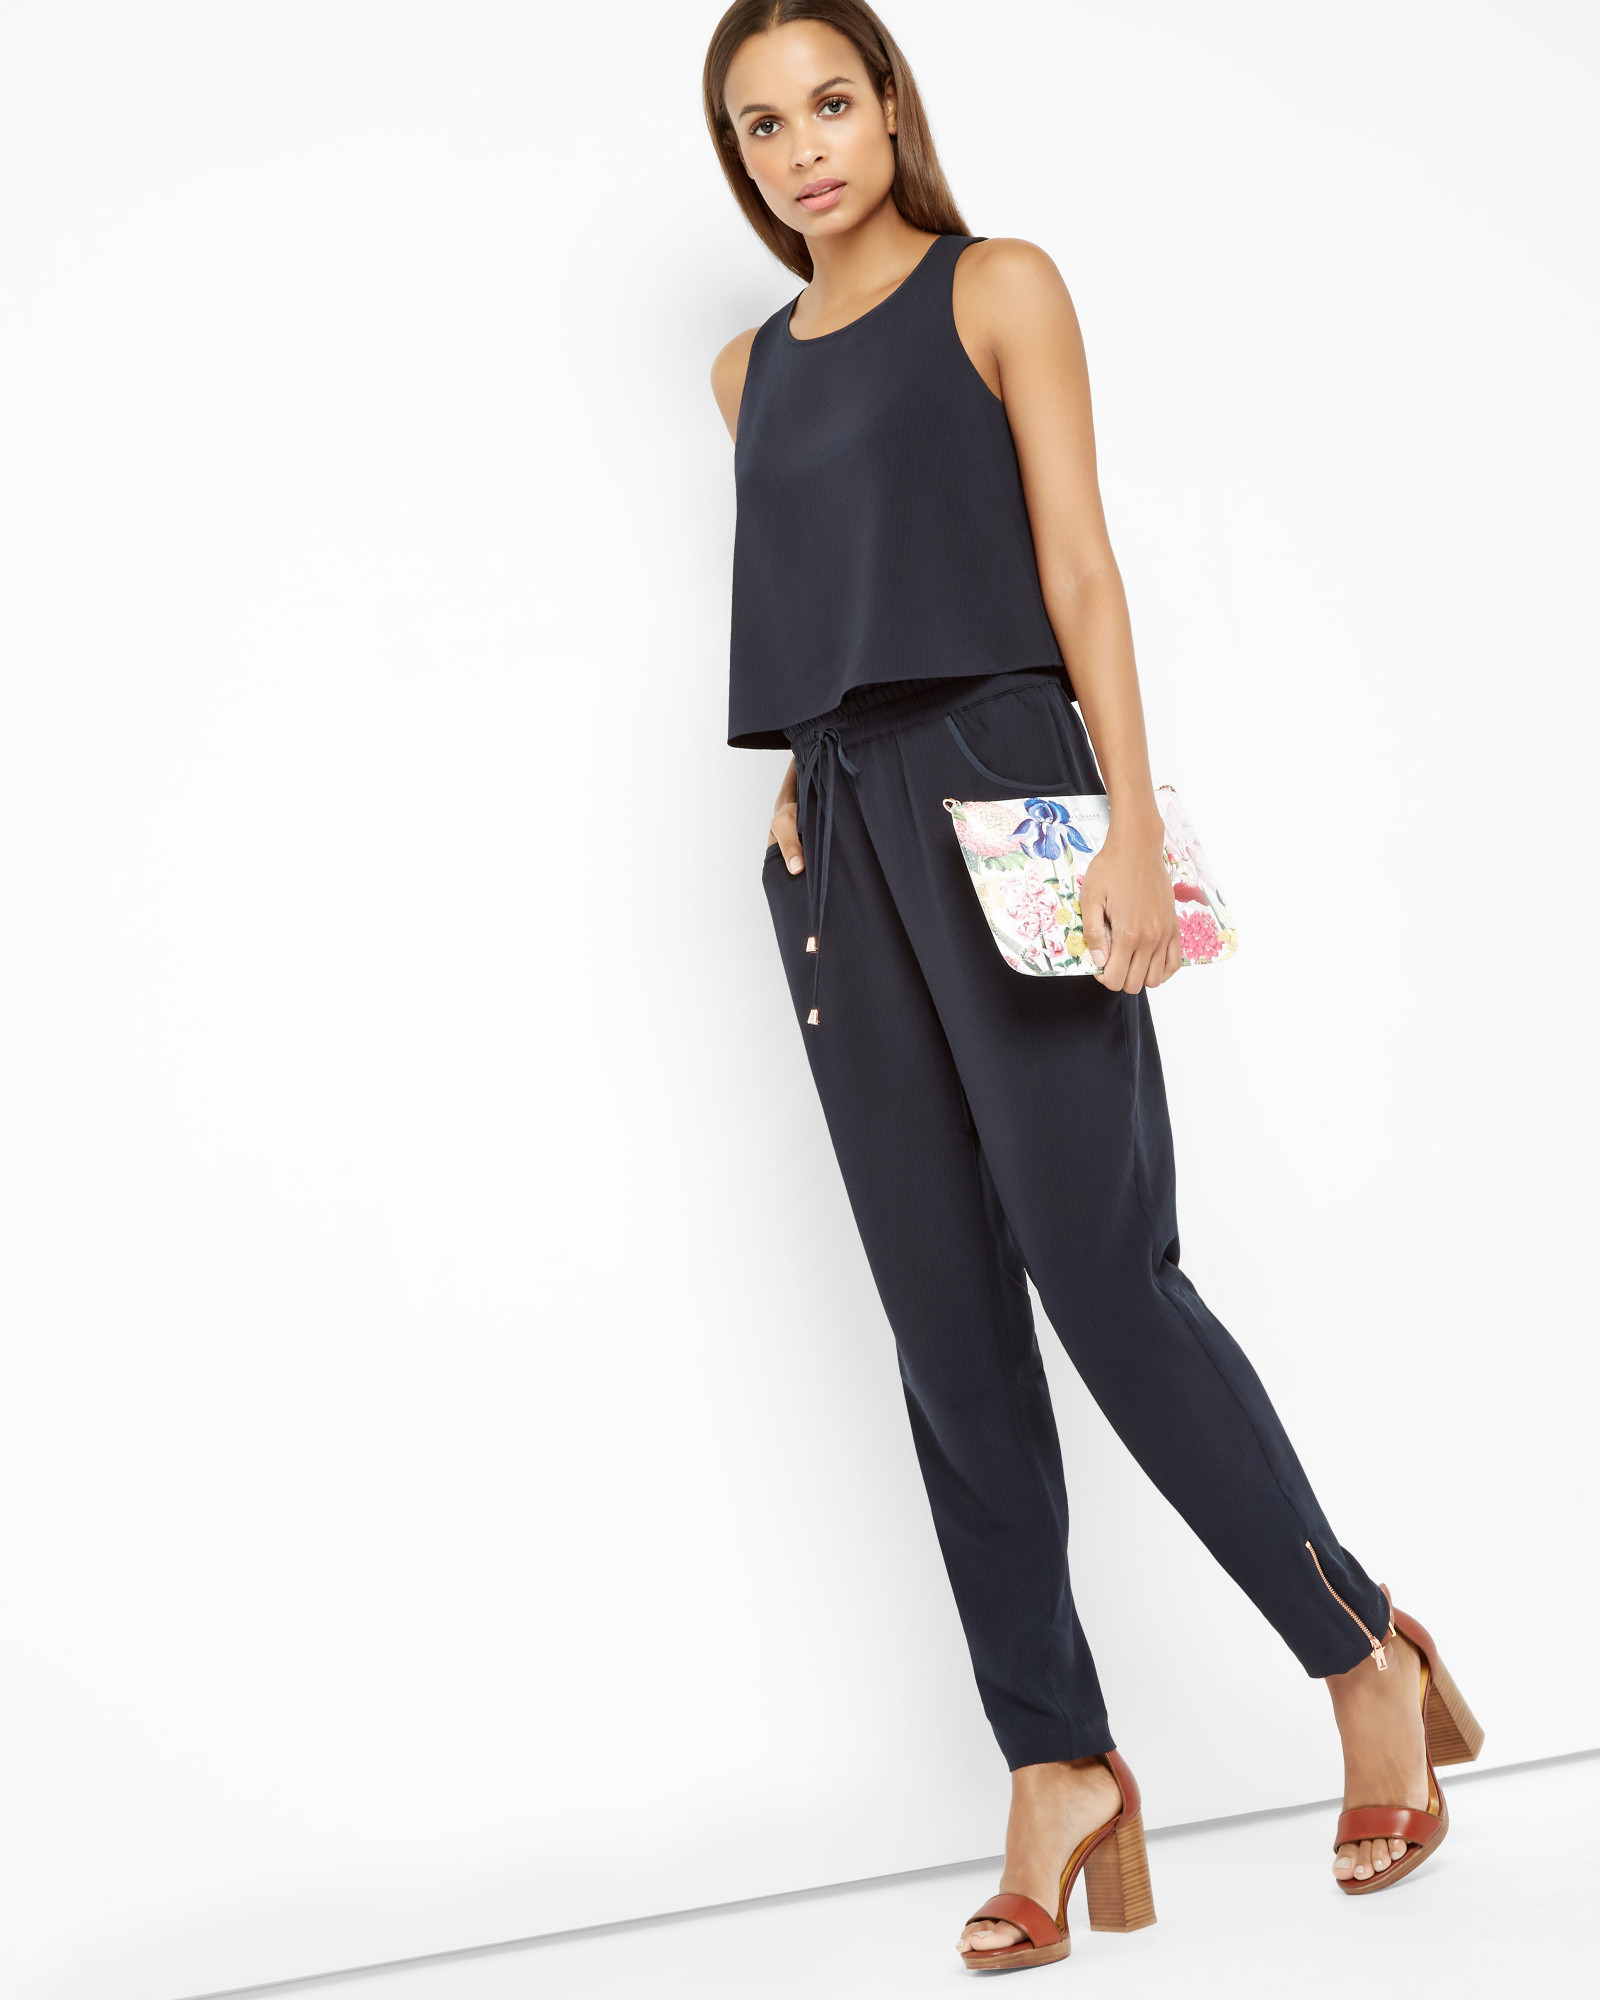 3a311da3f3 Ted baker draped top textured jumpsuit in black lyst jpg 1600x2000 Ted  baker jumpsuit